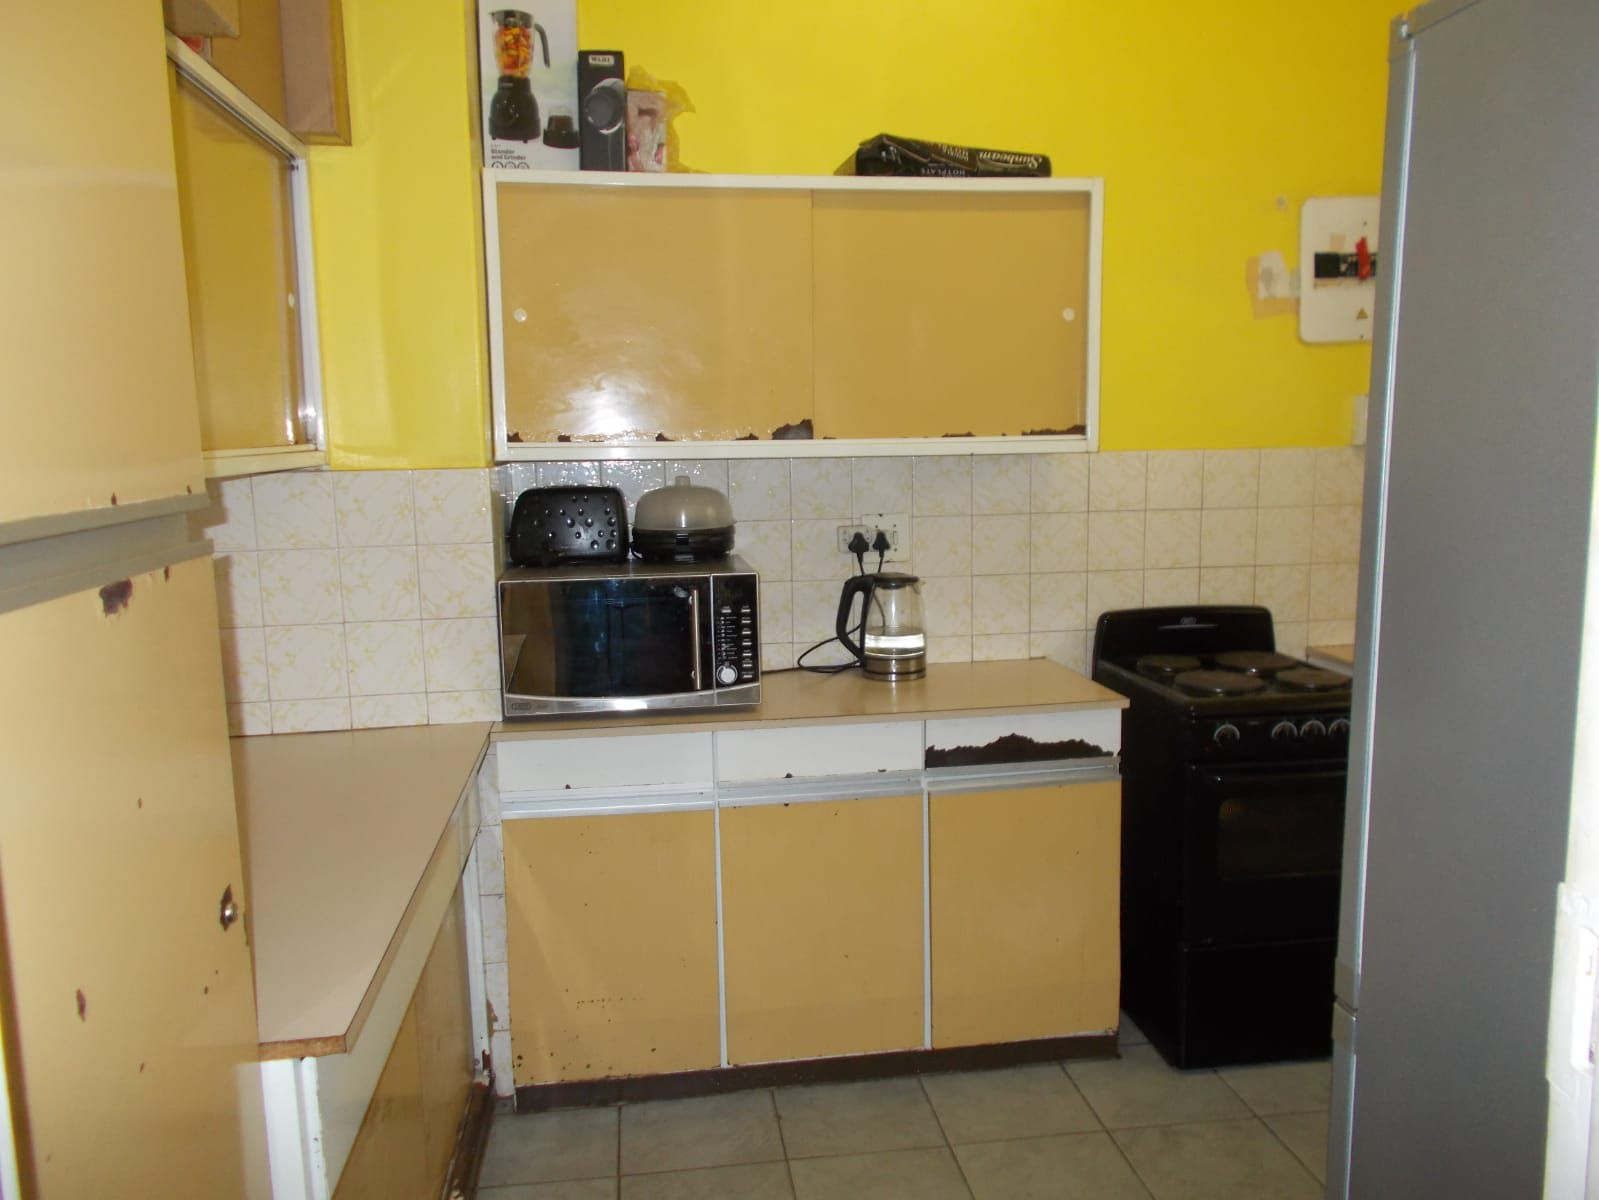 Apartment in Hillbrow - WhatsApp Image 2021-01-12 at 13.03.10 (3).jpeg